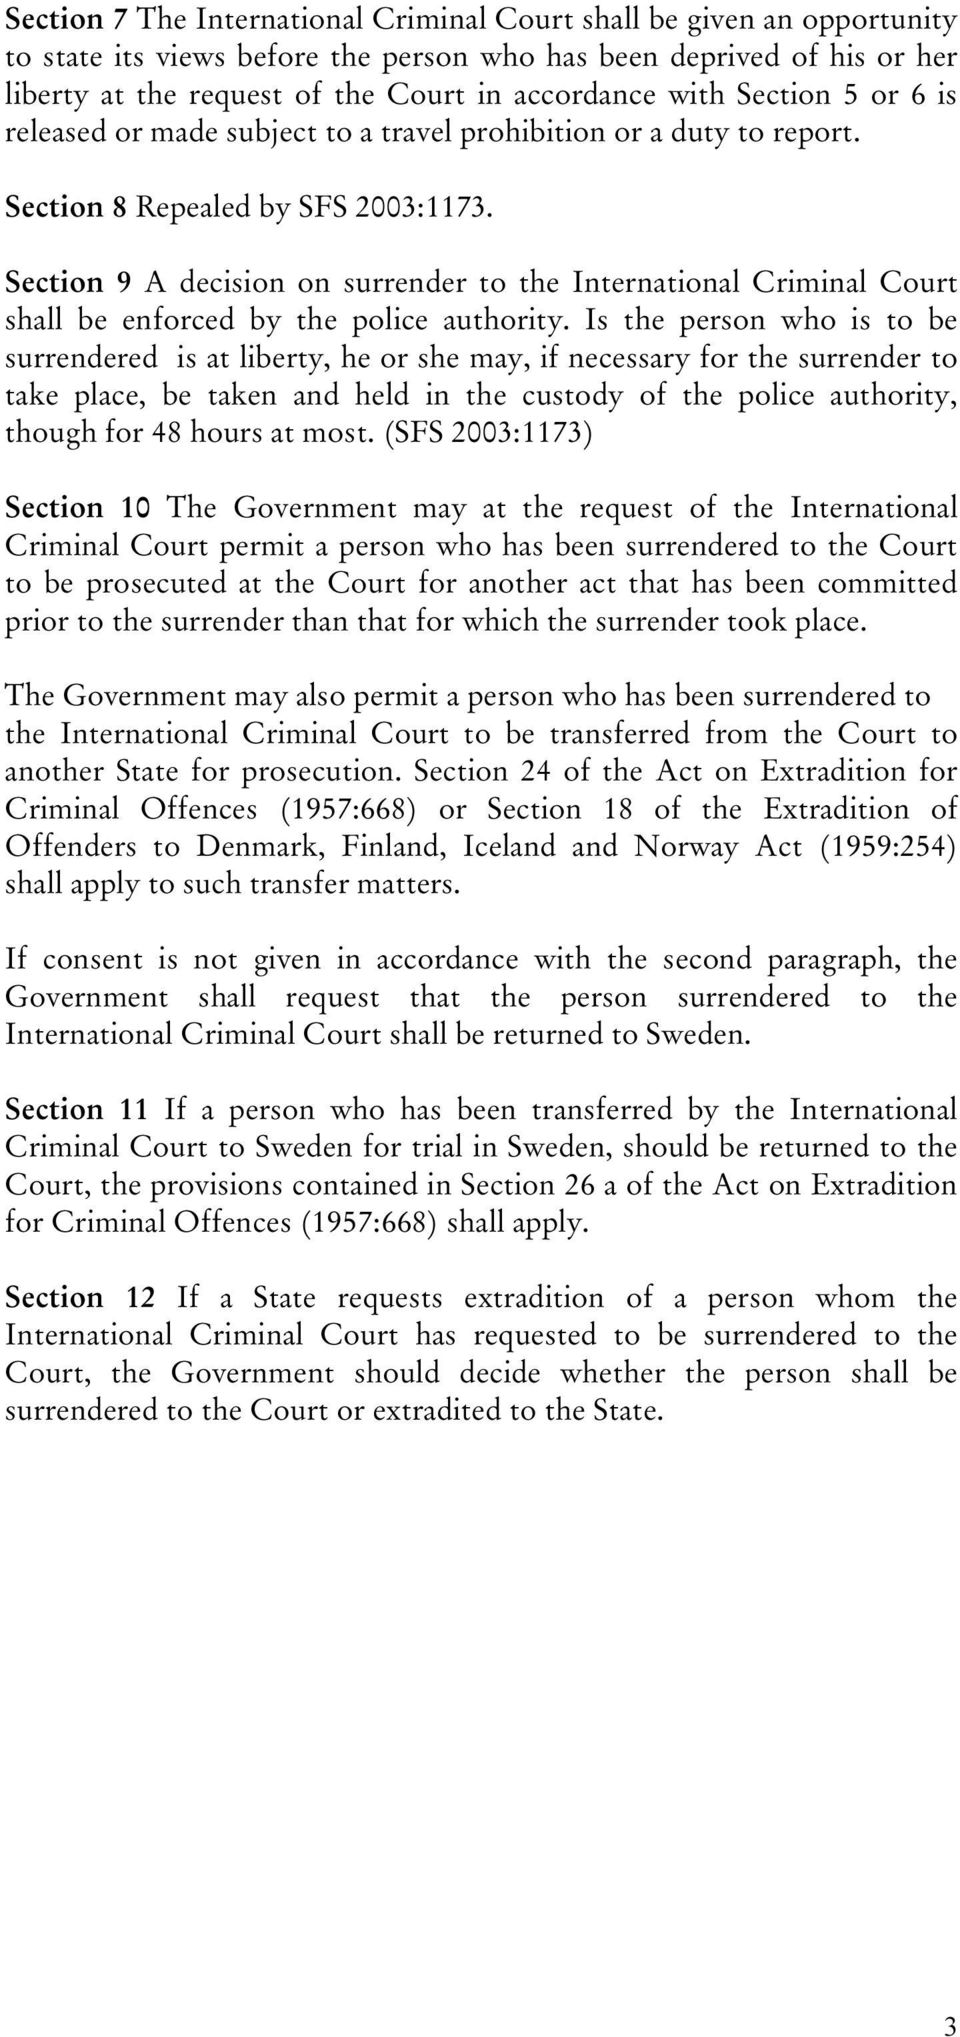 Section 9 A decision on surrender to the International Criminal Court shall be enforced by the police authority.